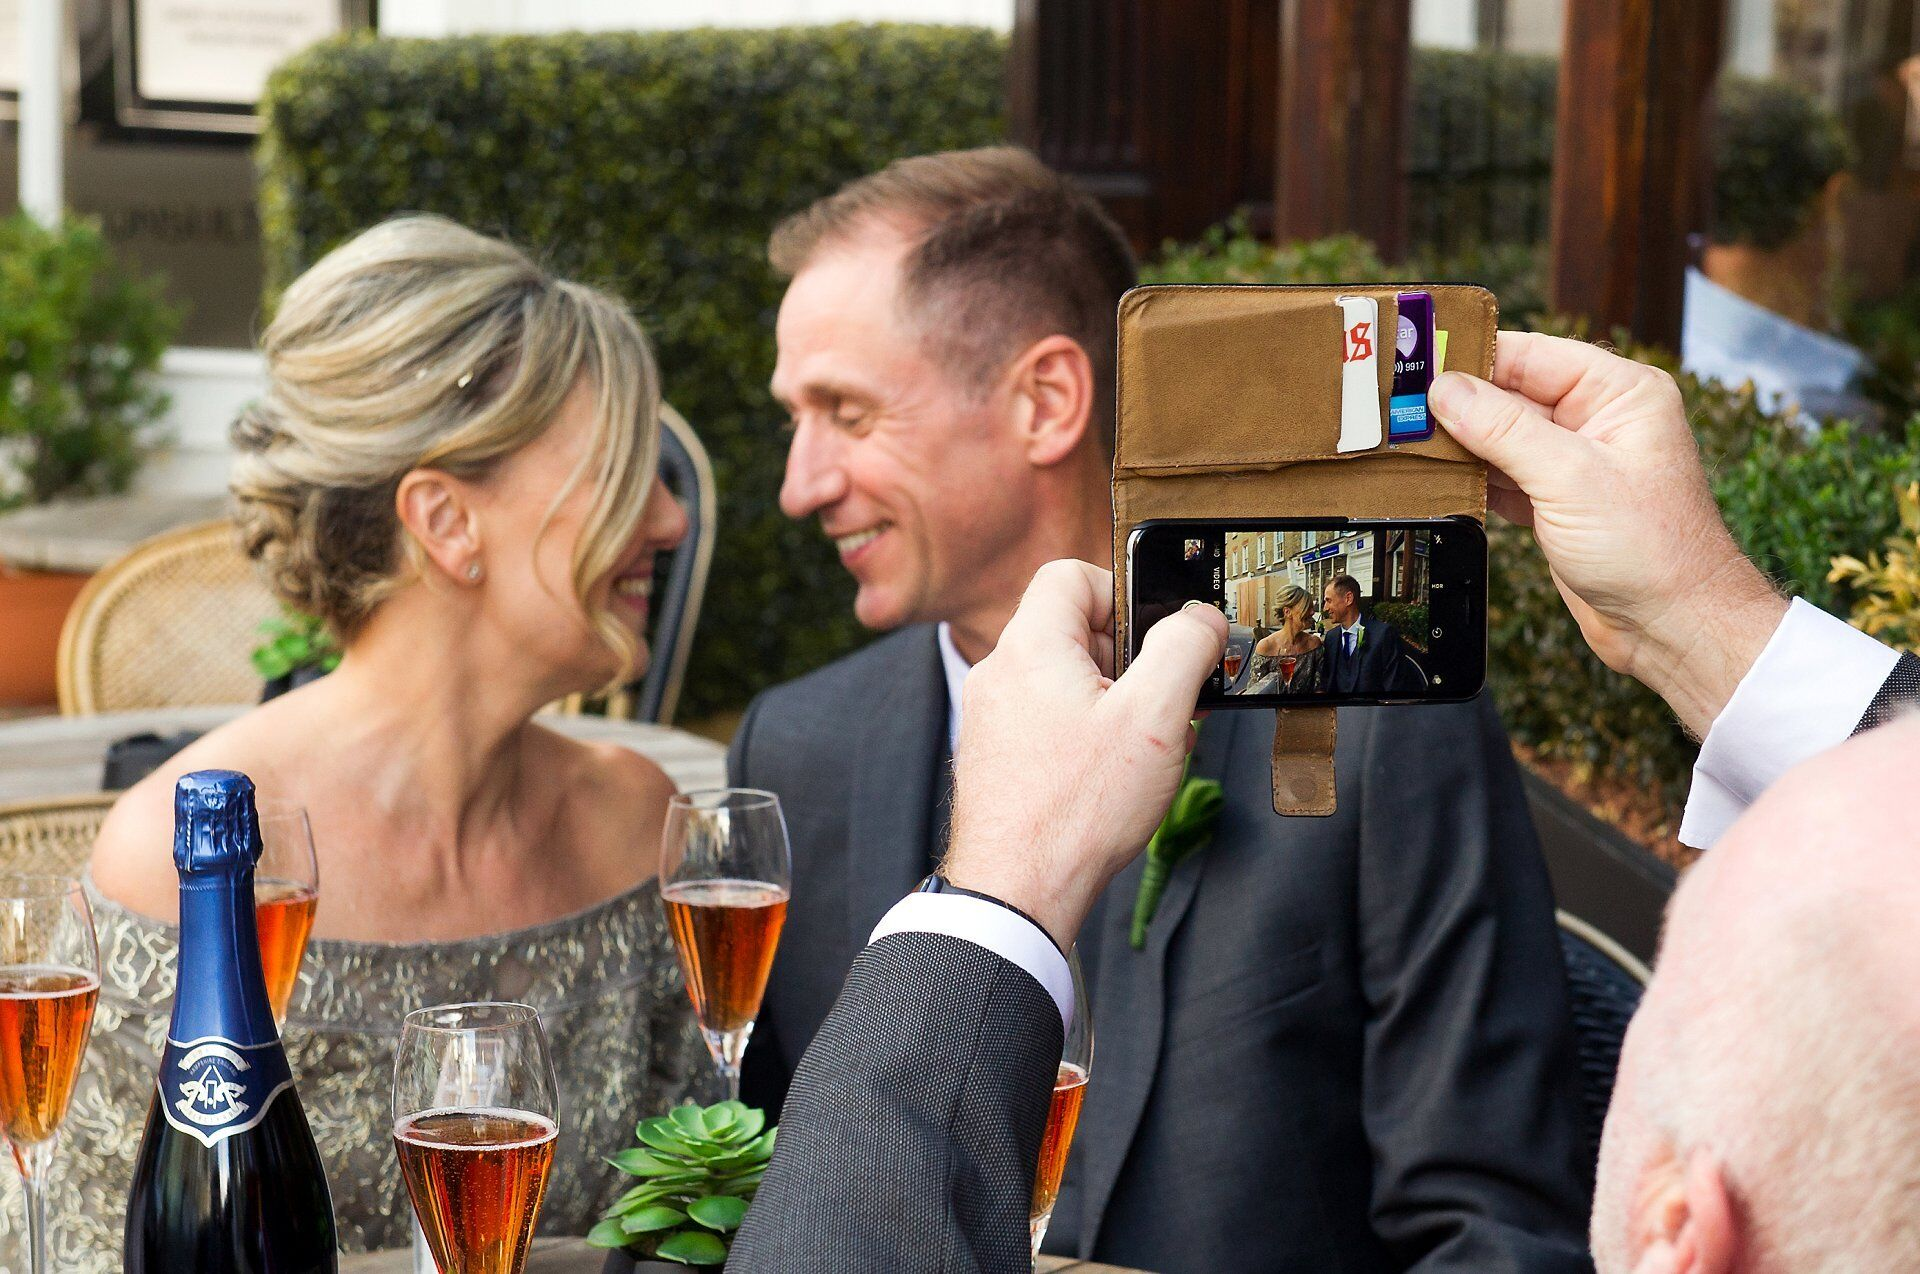 a guest takes a photo of bride and groom brenda and michael outside the harcourt in marylebone